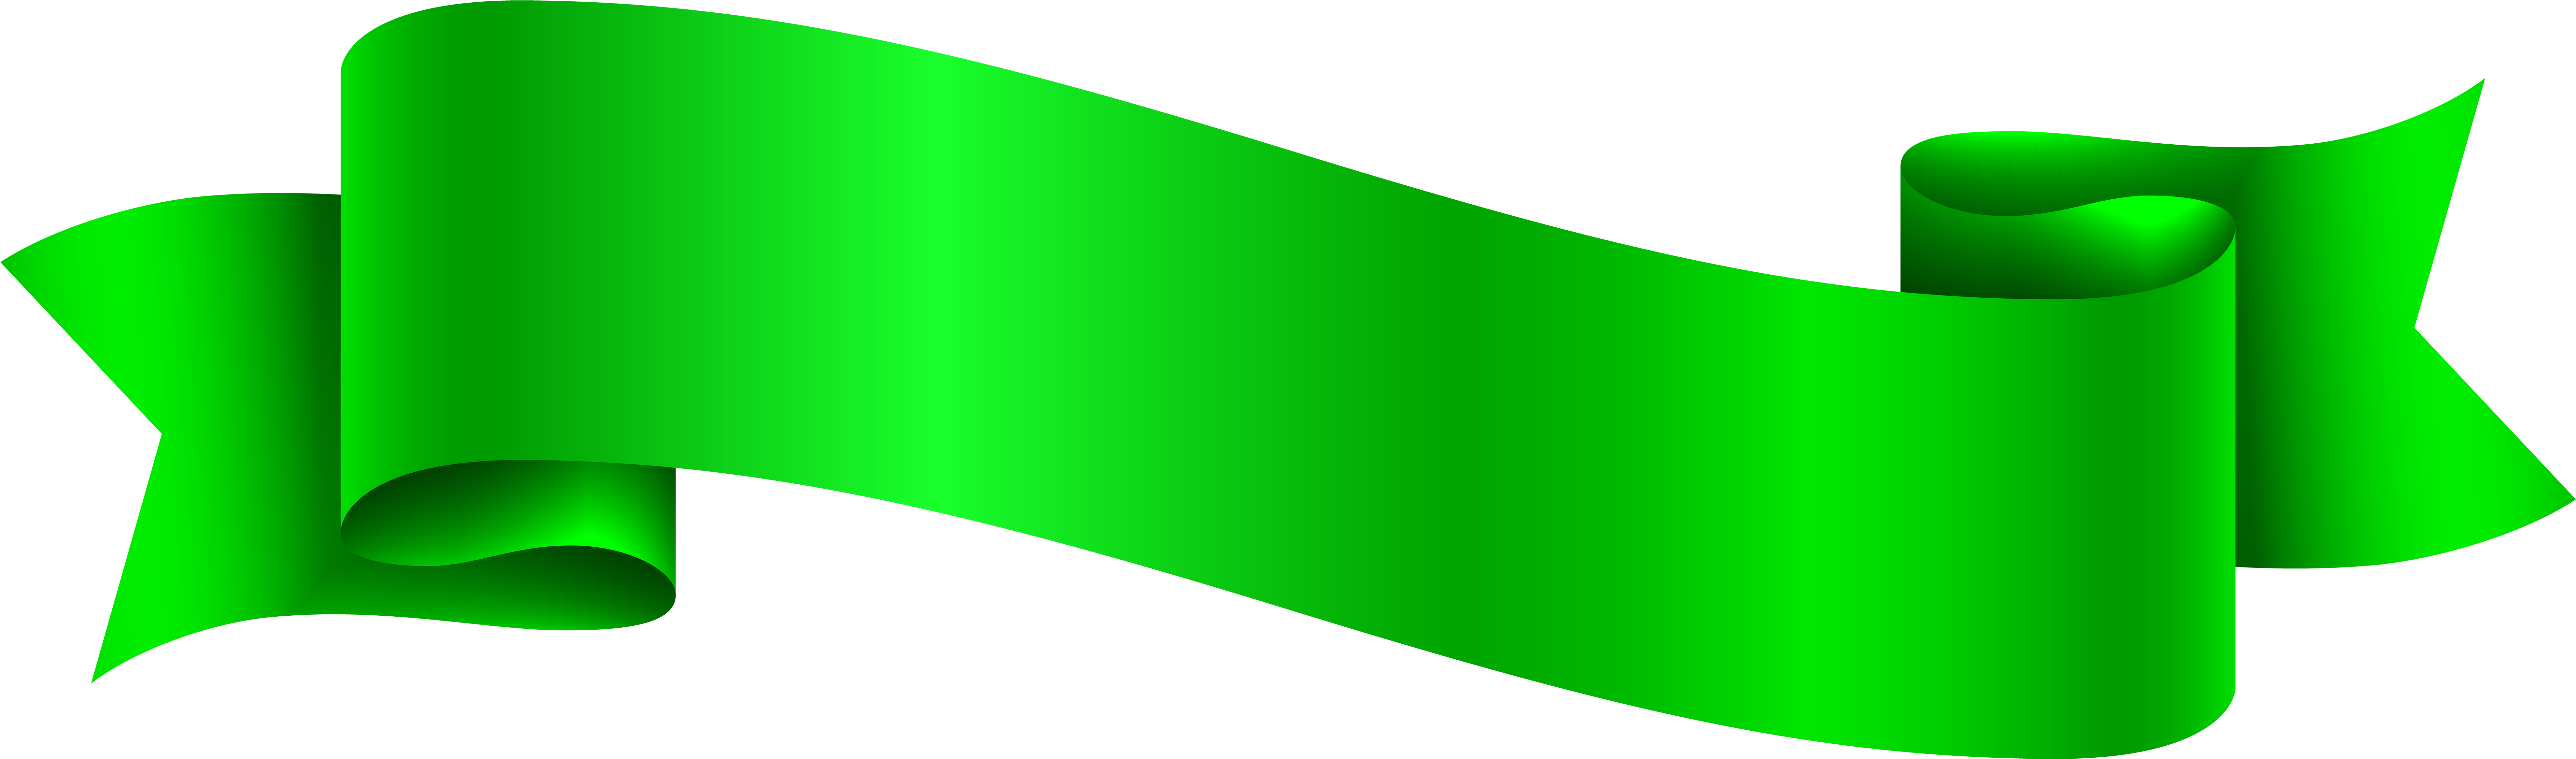 Green Banner Png.